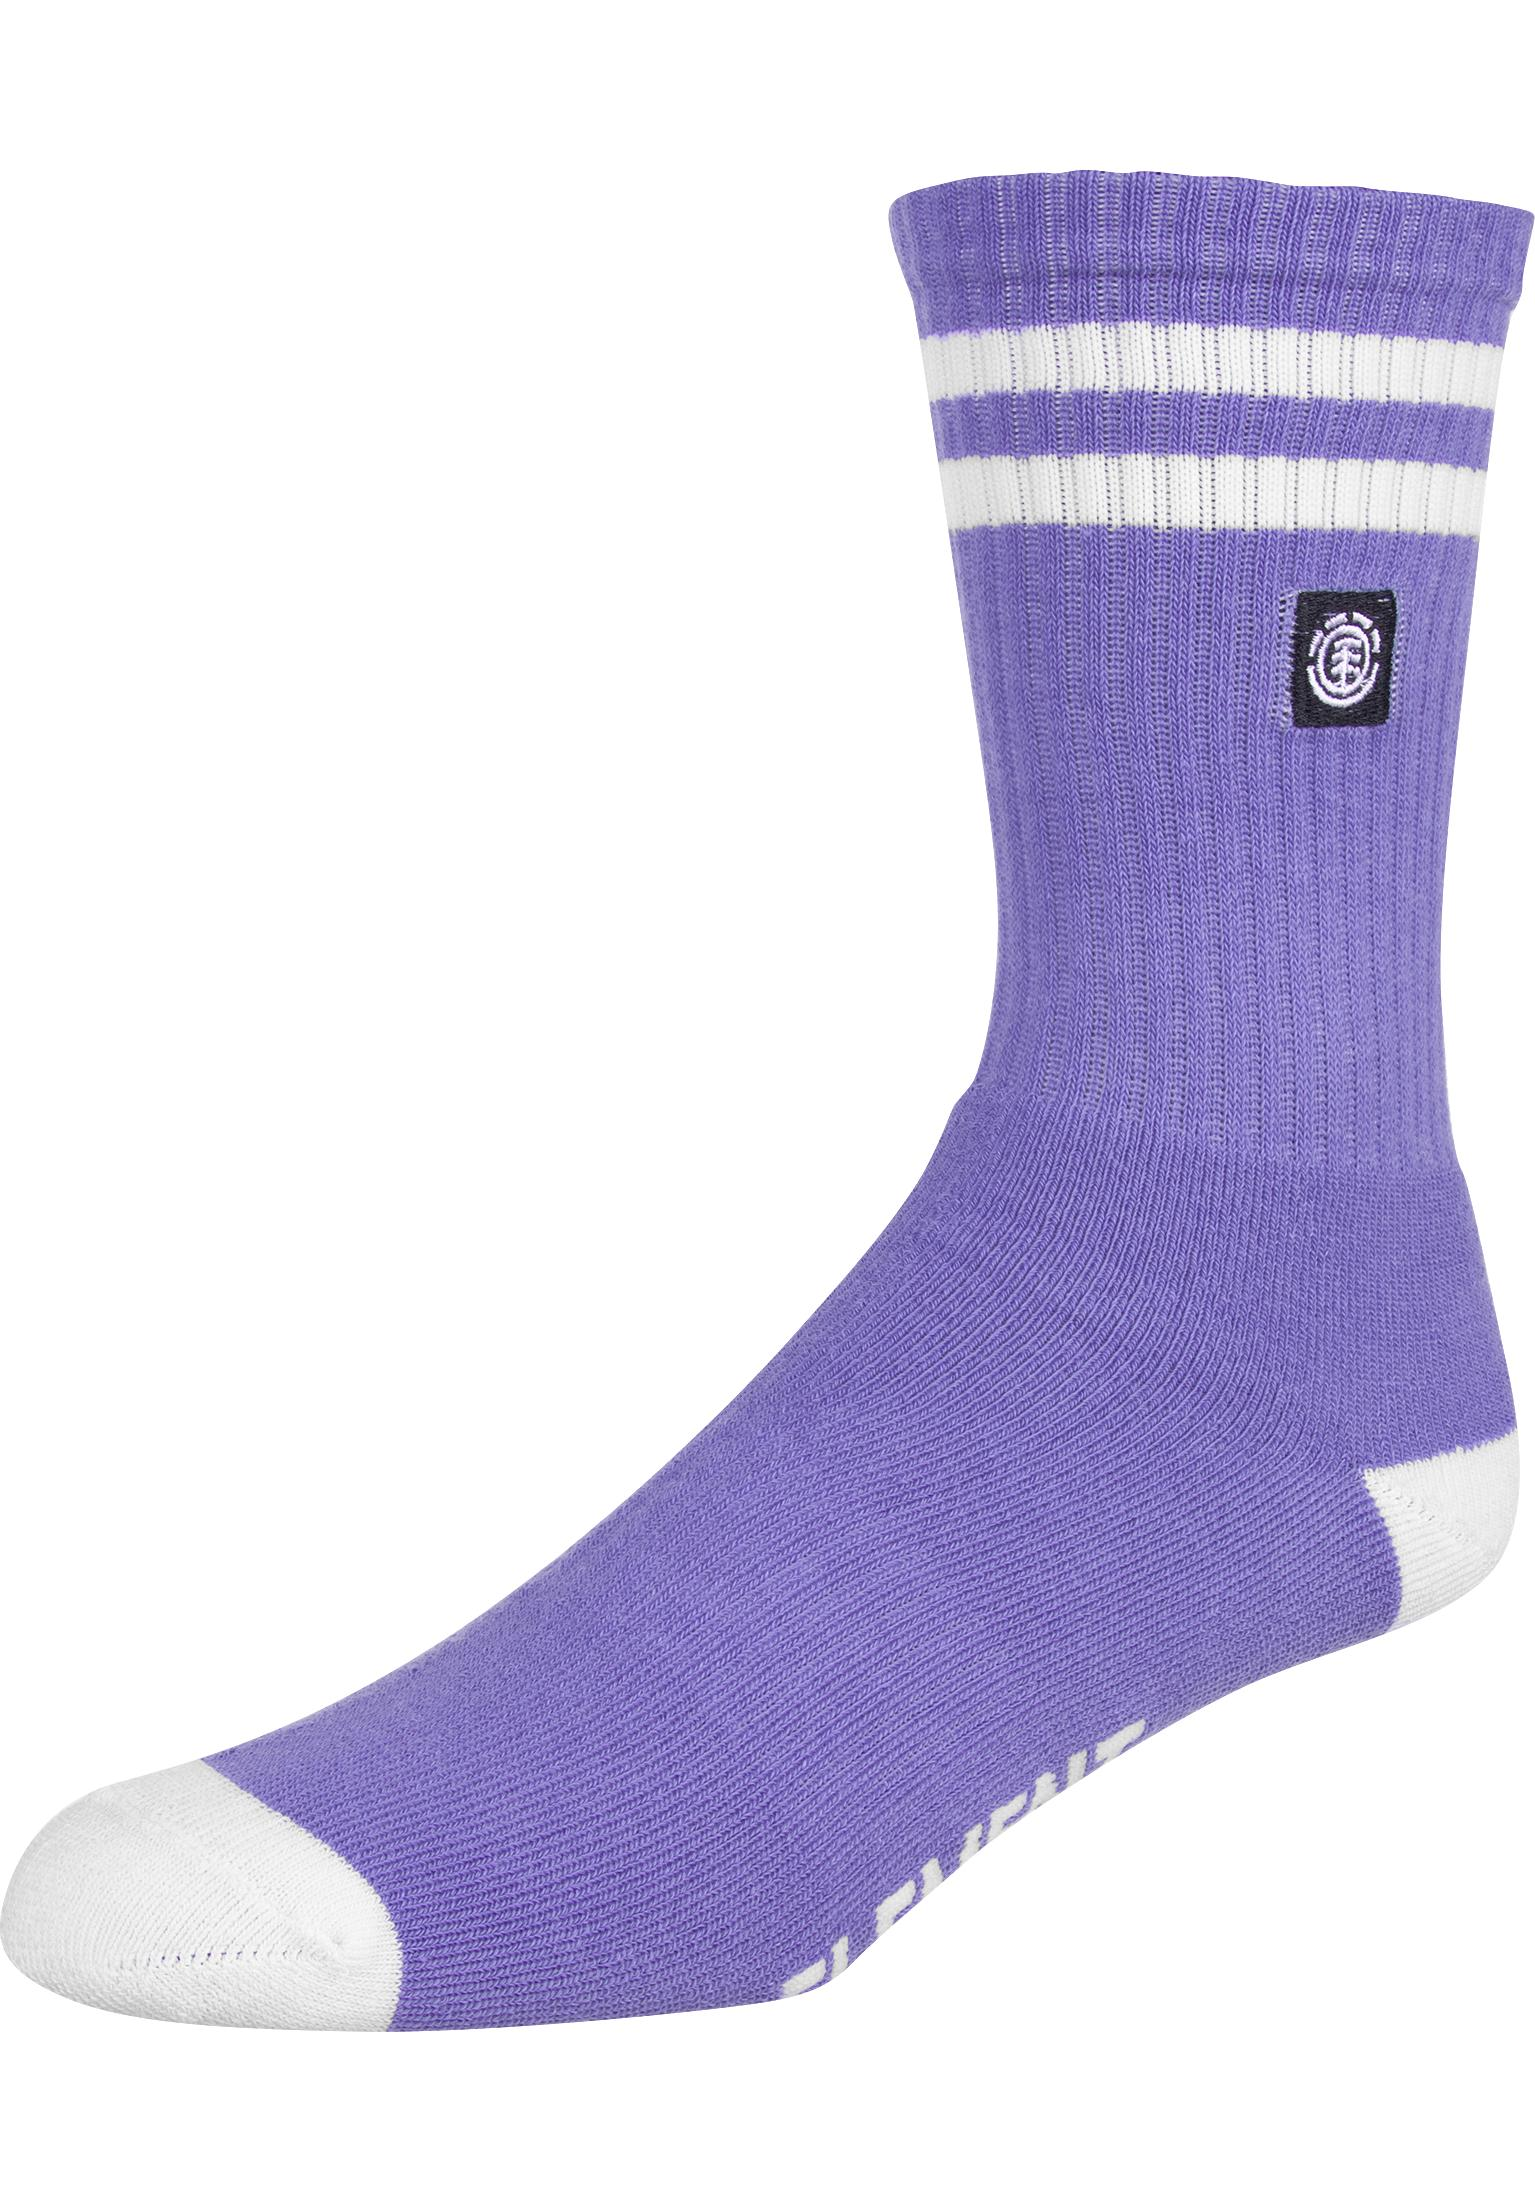 Titus_Aachen_element-socken-vivid-asterpurple-vorderansicht.jpg